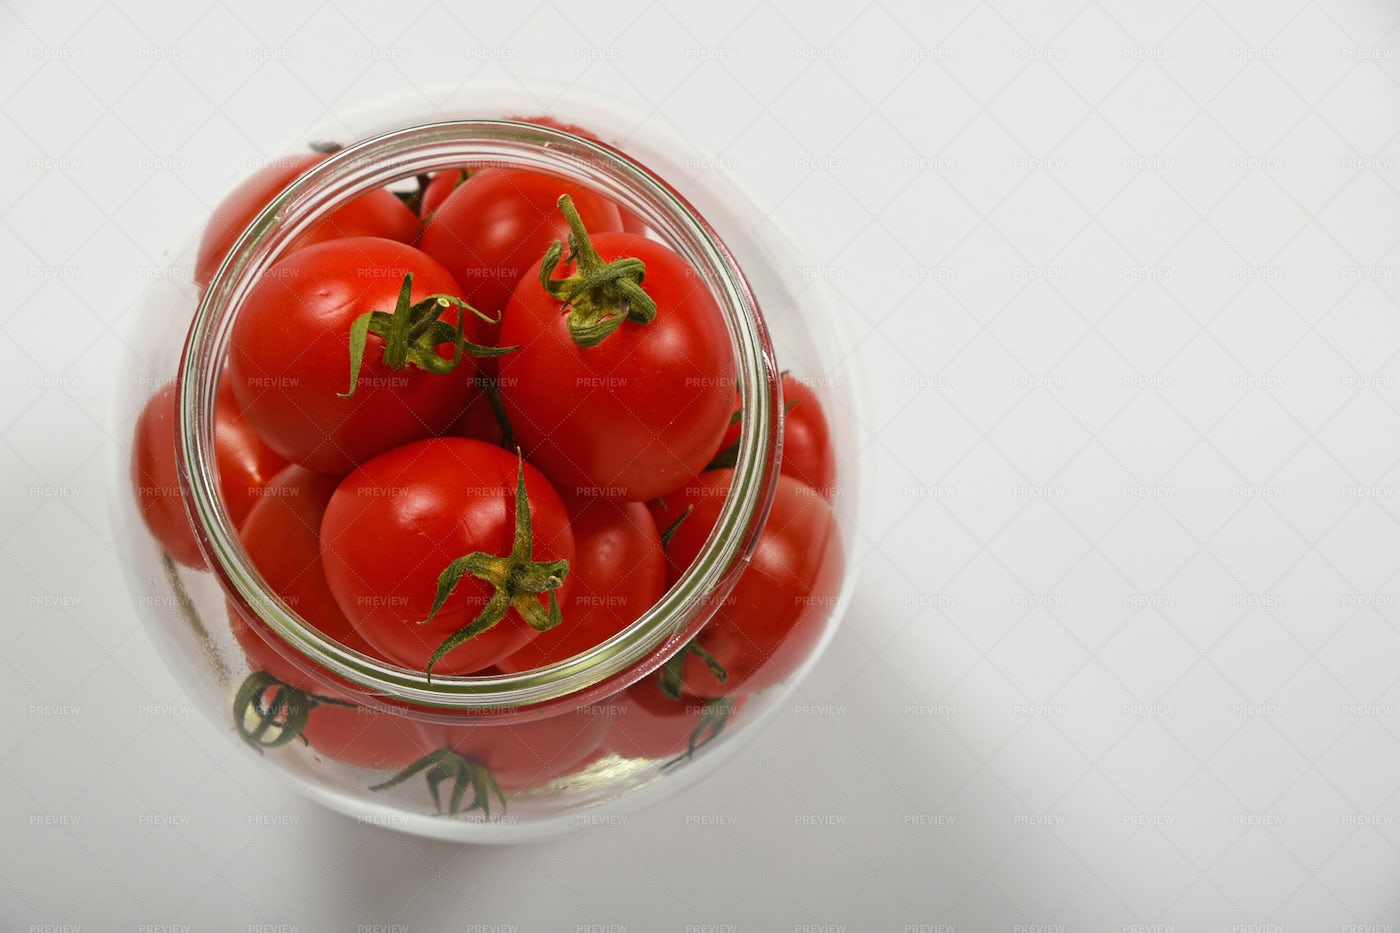 Cherry Tomatoes In A Glass Jar: Stock Photos